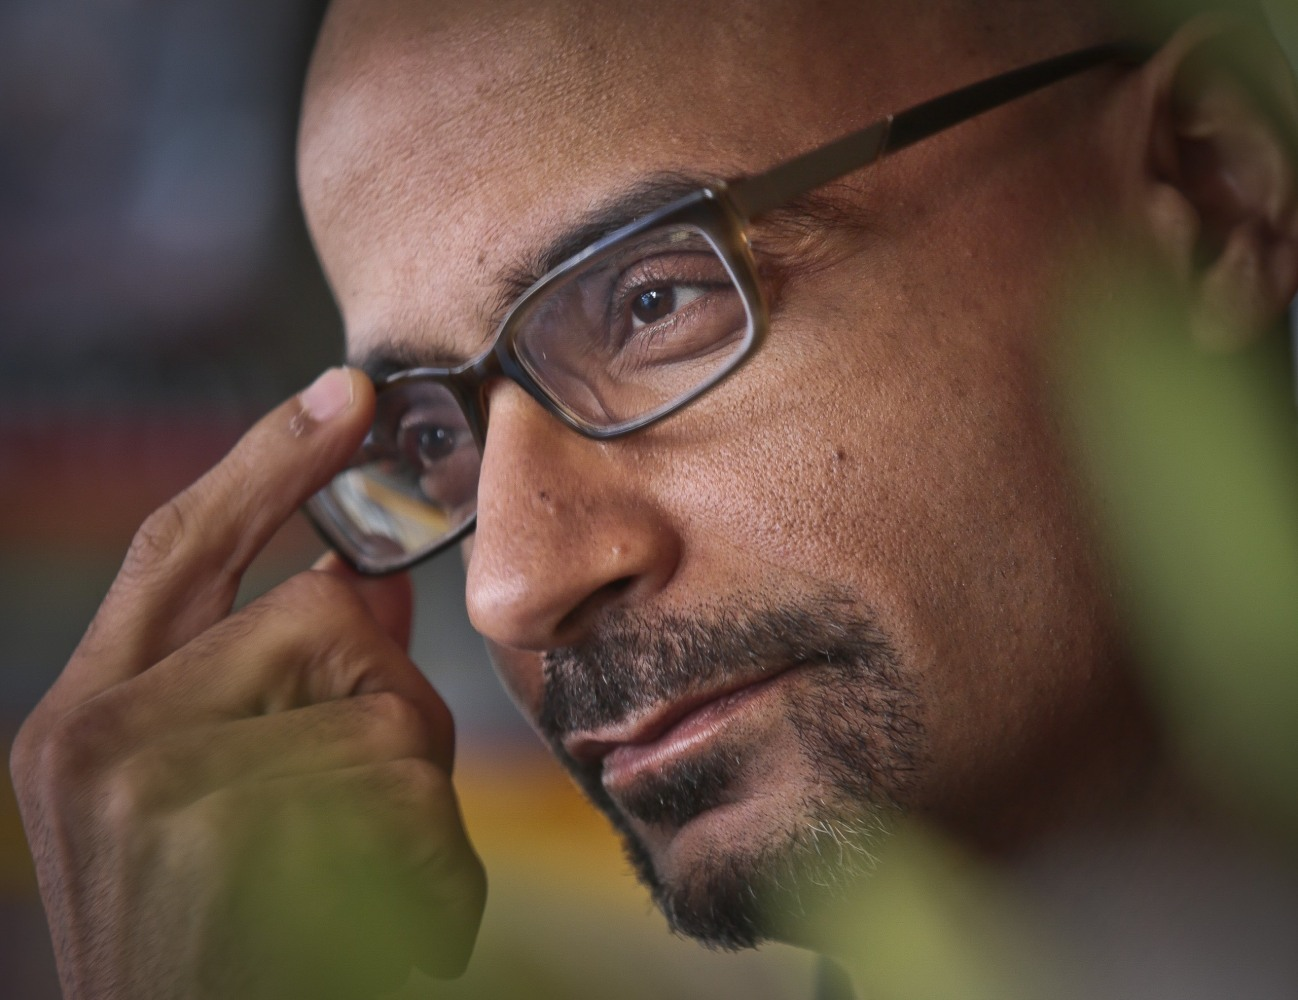 junot diaz bio Pulitzer prize-winning author junot diaz debuts his newest book islandborn on march 13 at the brooklyn public library.